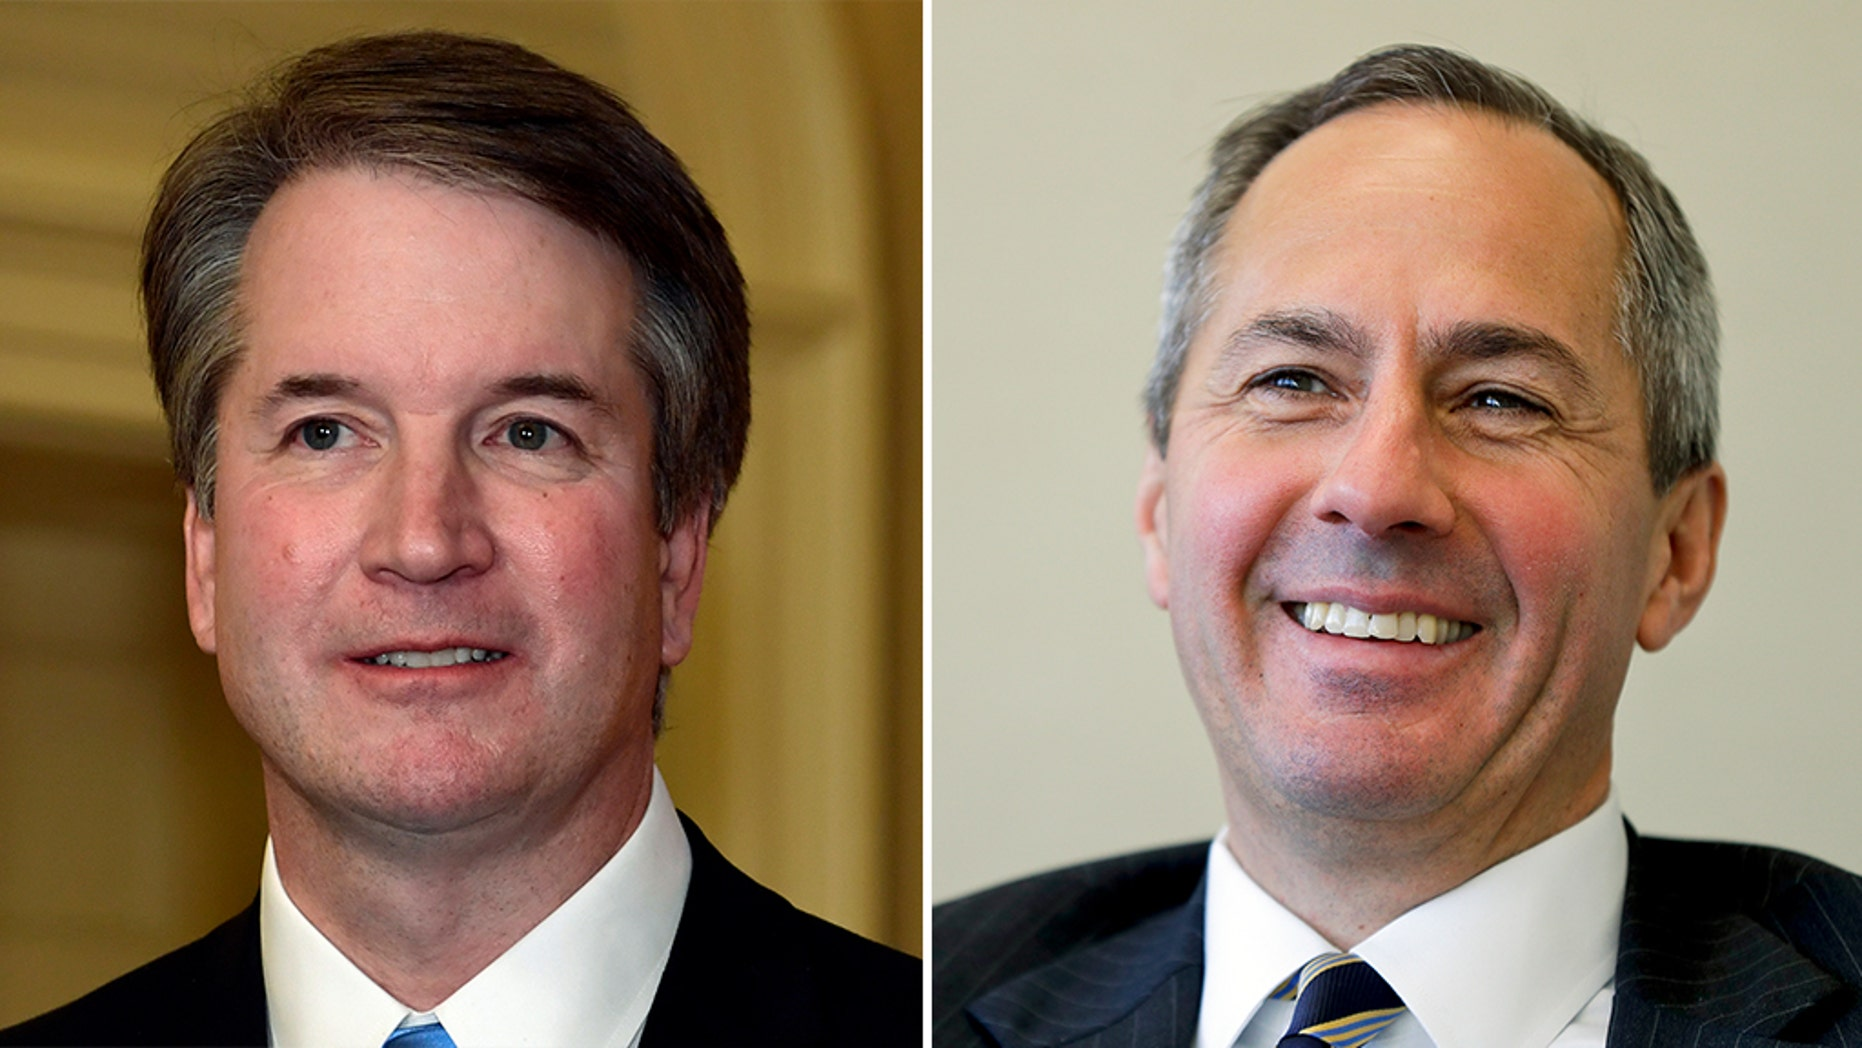 The Democrats' Twitter account posted a warning about President Trump's Supreme Court pick -- showing Judge Thomas Hardiman, right, not Judge Brett Kavanaugh.